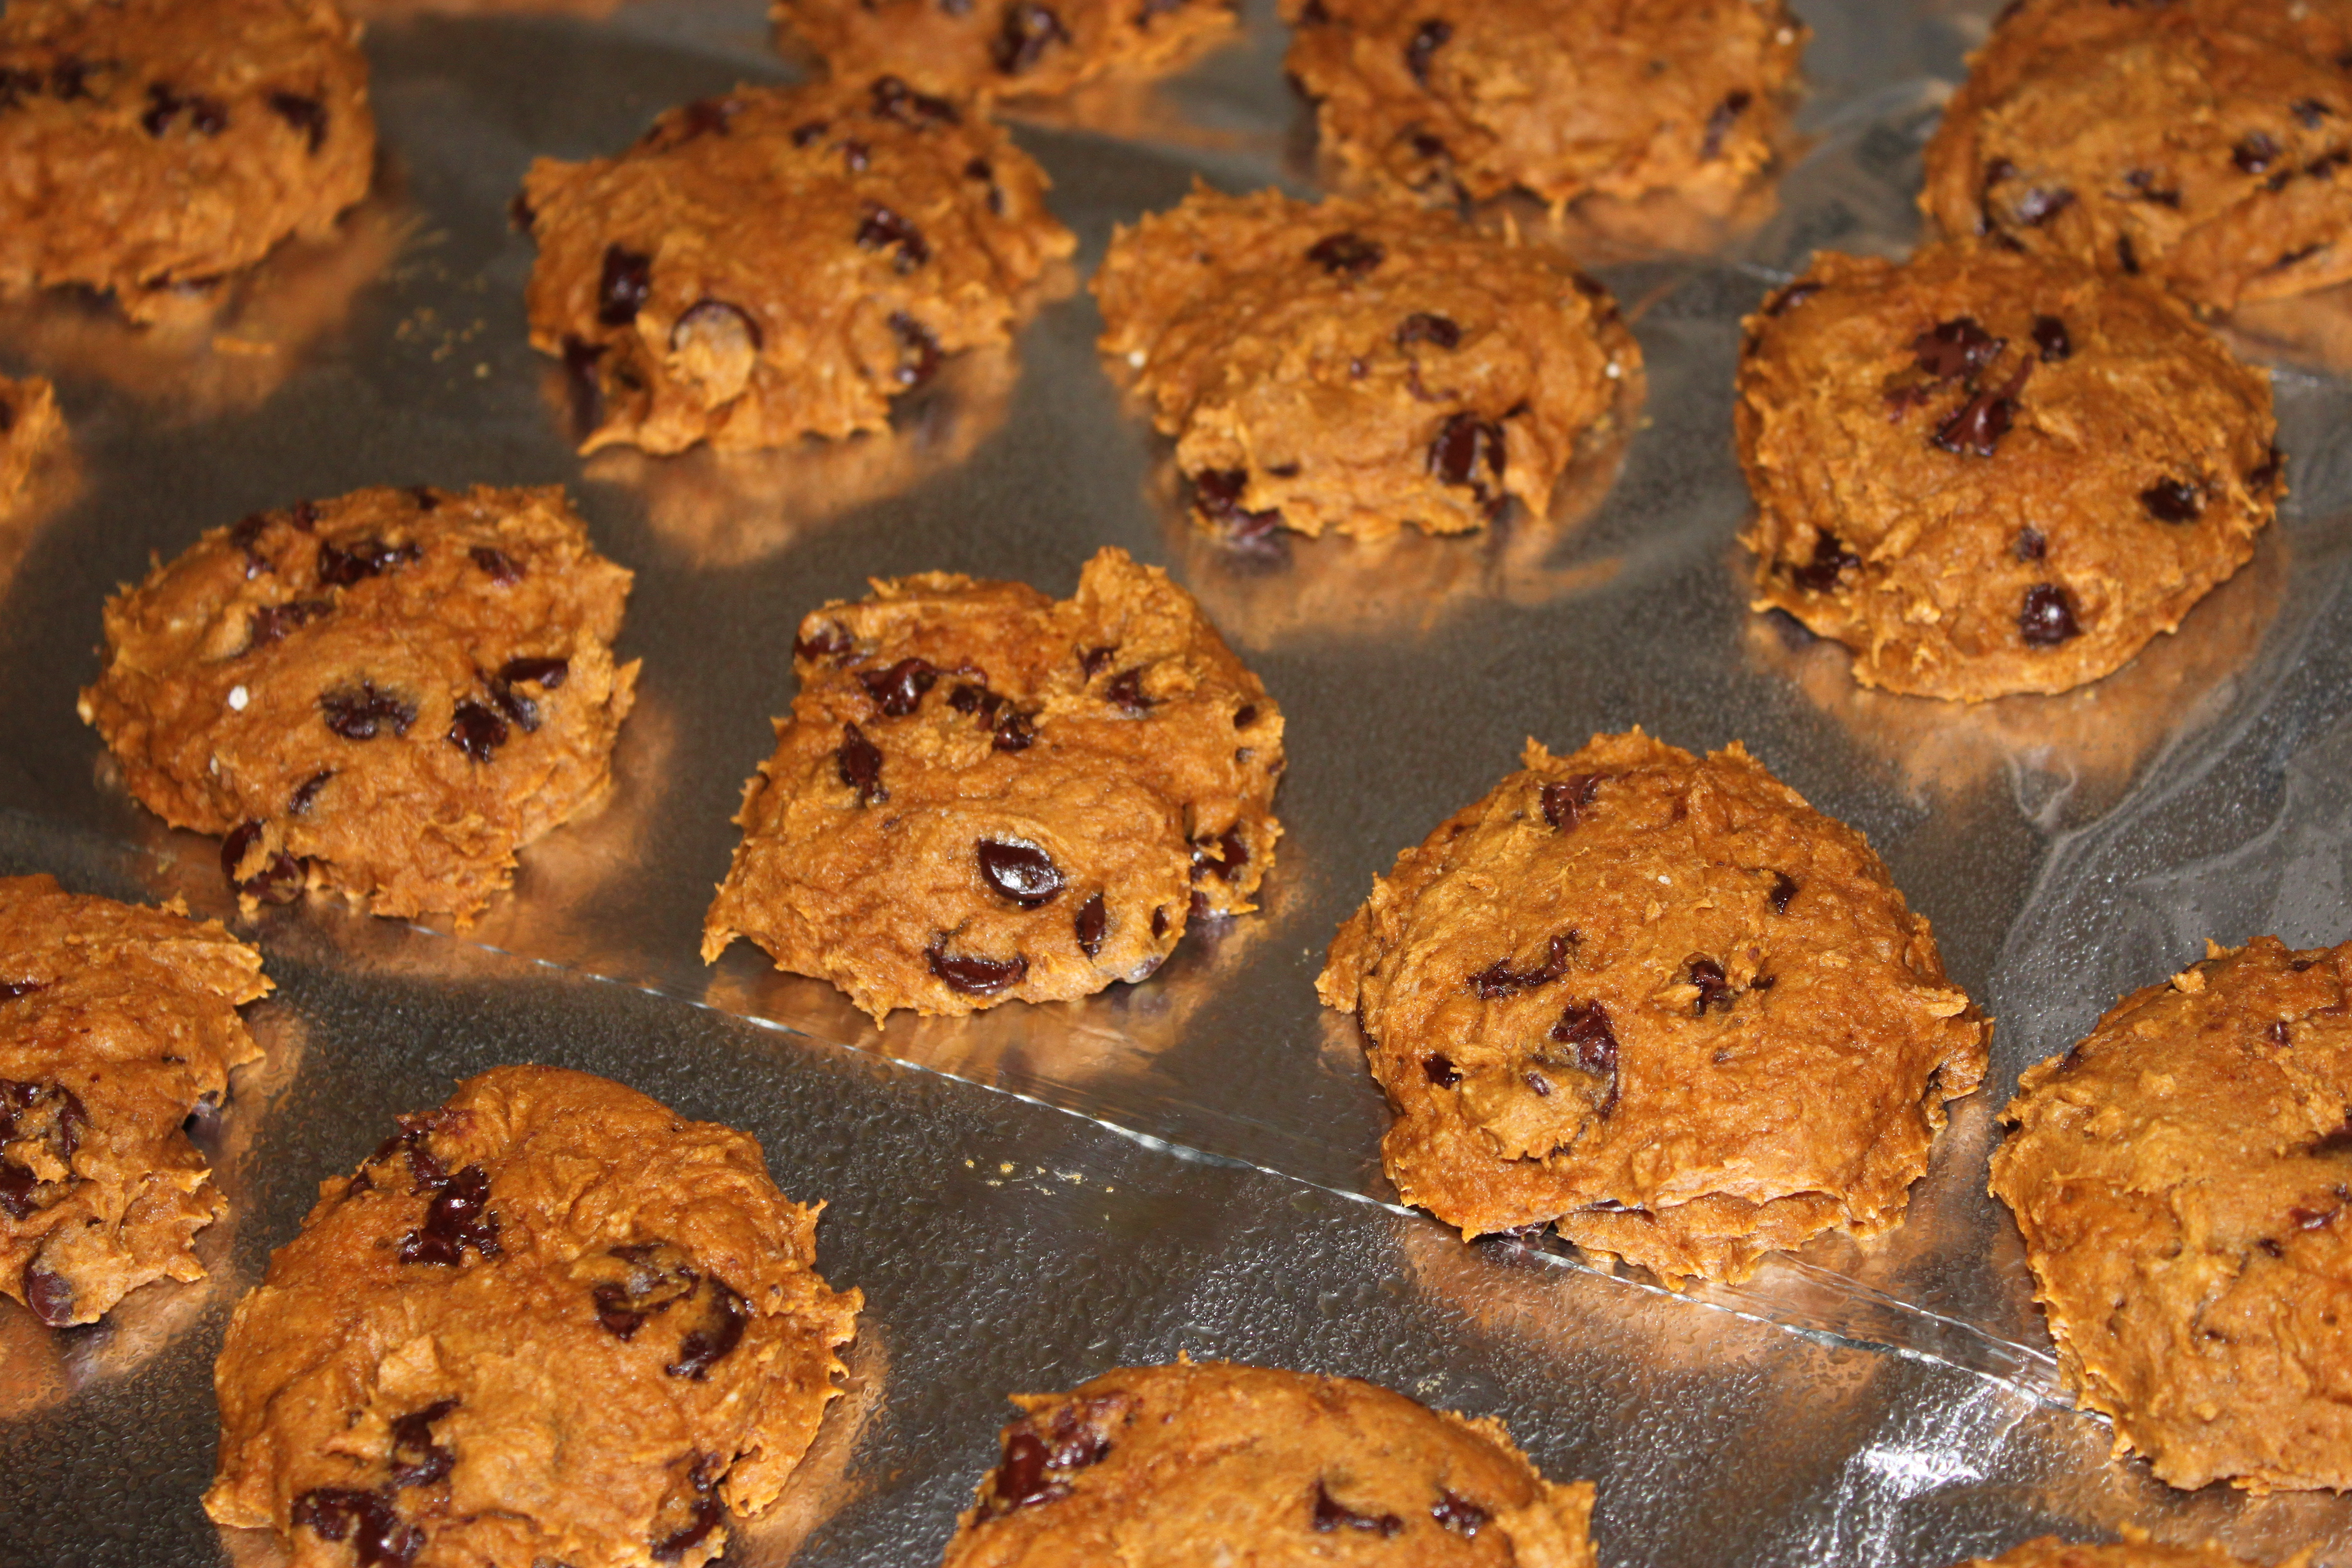 Not the prettiest cookies ever, eh? A little on the rustic side for my ...